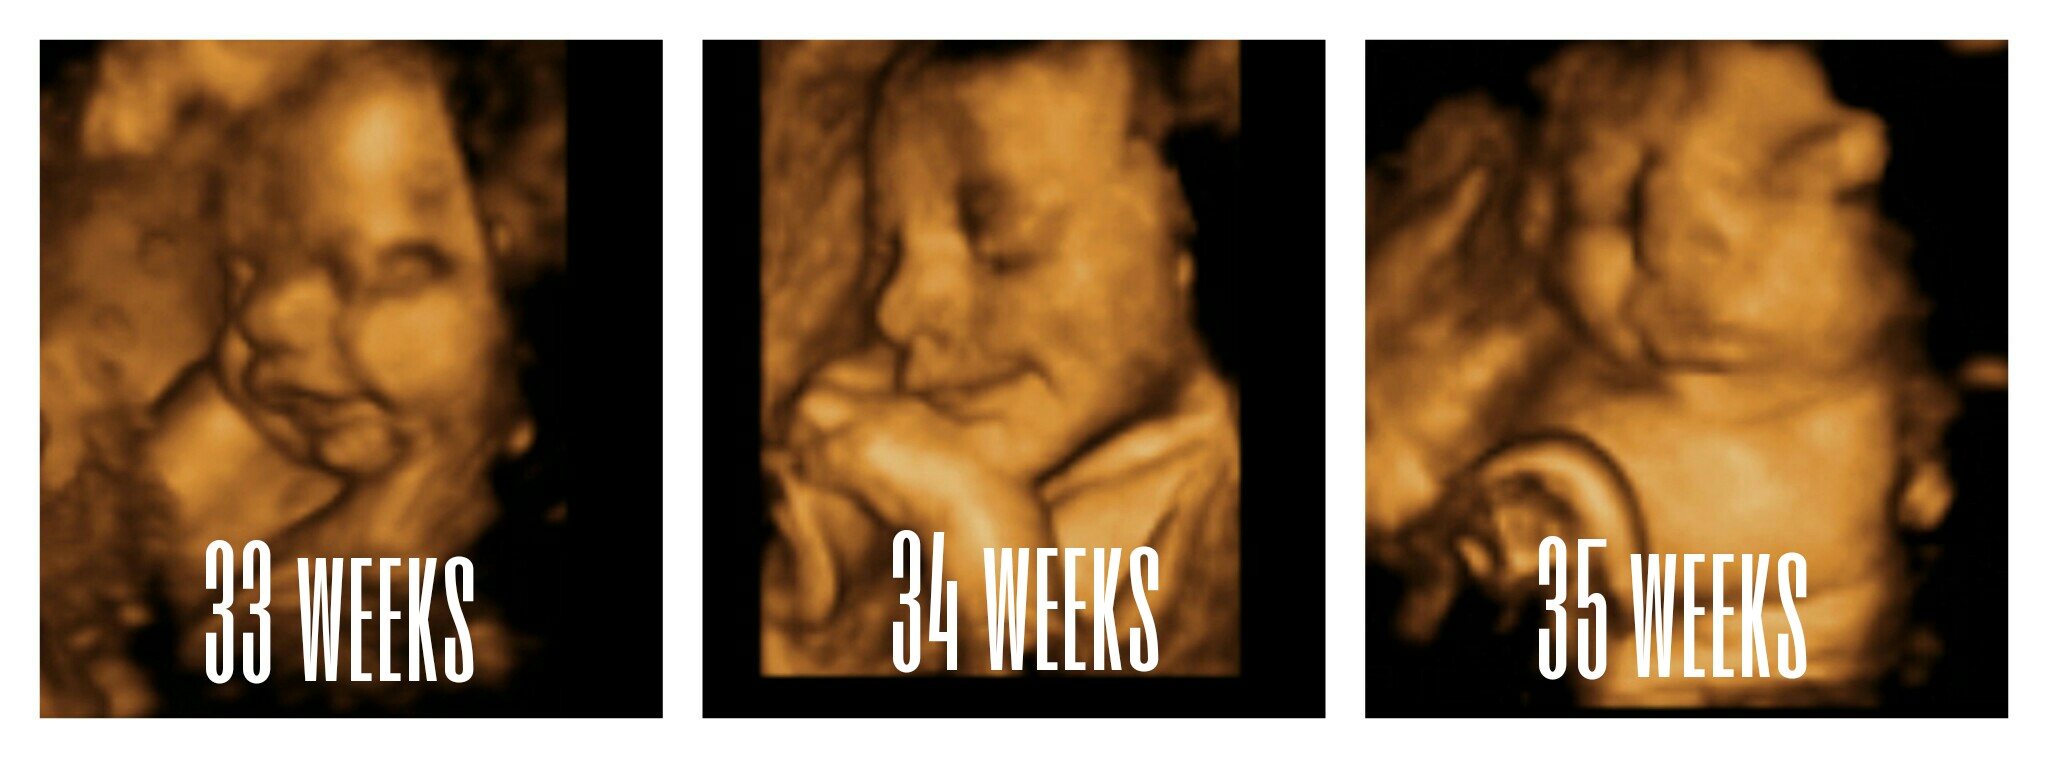 Dating ultrasound at 35 weeks